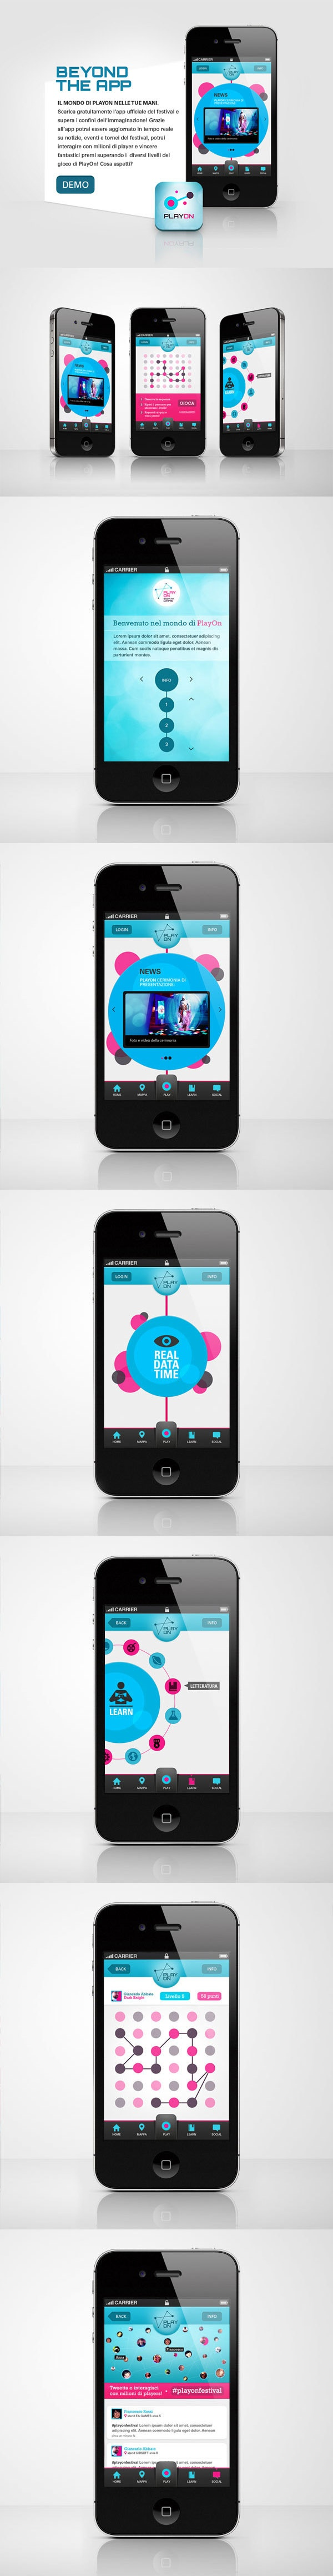 #App #Behance #Mobile #Digital